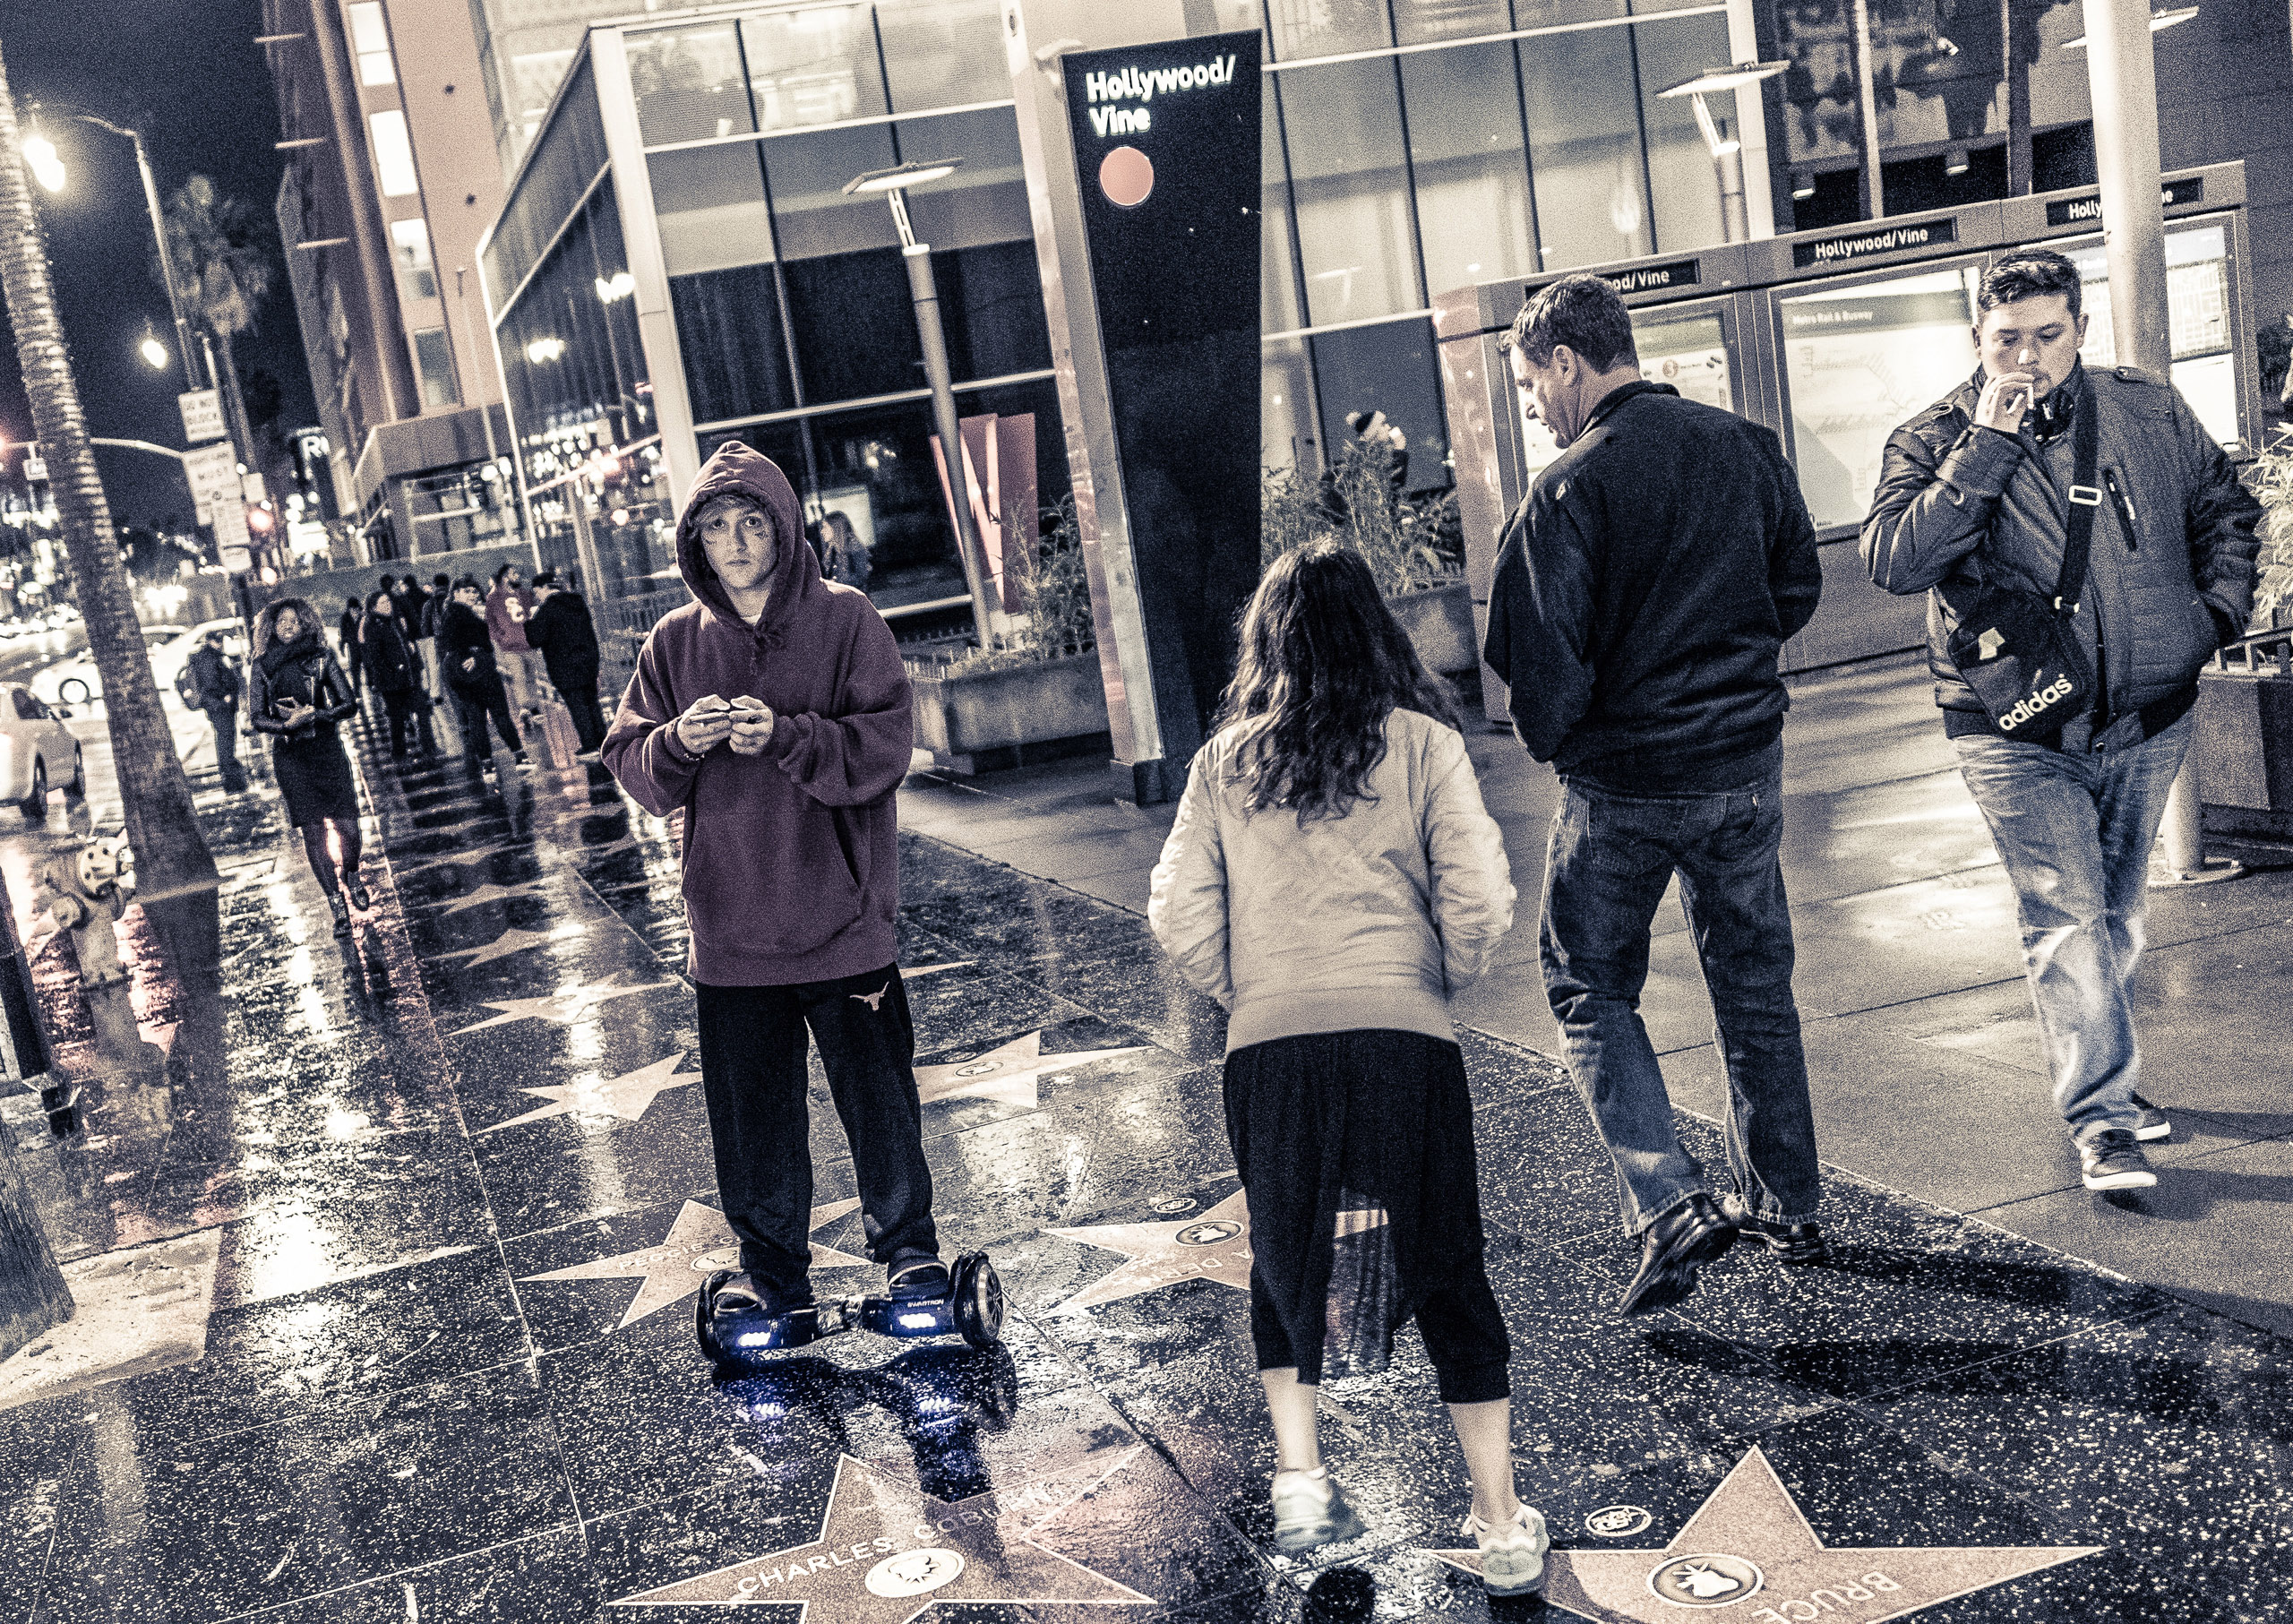 a guy in a red hoodie rides a hoverboard down the Hollywood Blvd sidewalk in front of the Hollywood & Vine Metro station. The sidewalk is wet from a light rain a few moments earlier. Other pedestrians walk in either direction or stop to read the names of the stars on the sidewalk